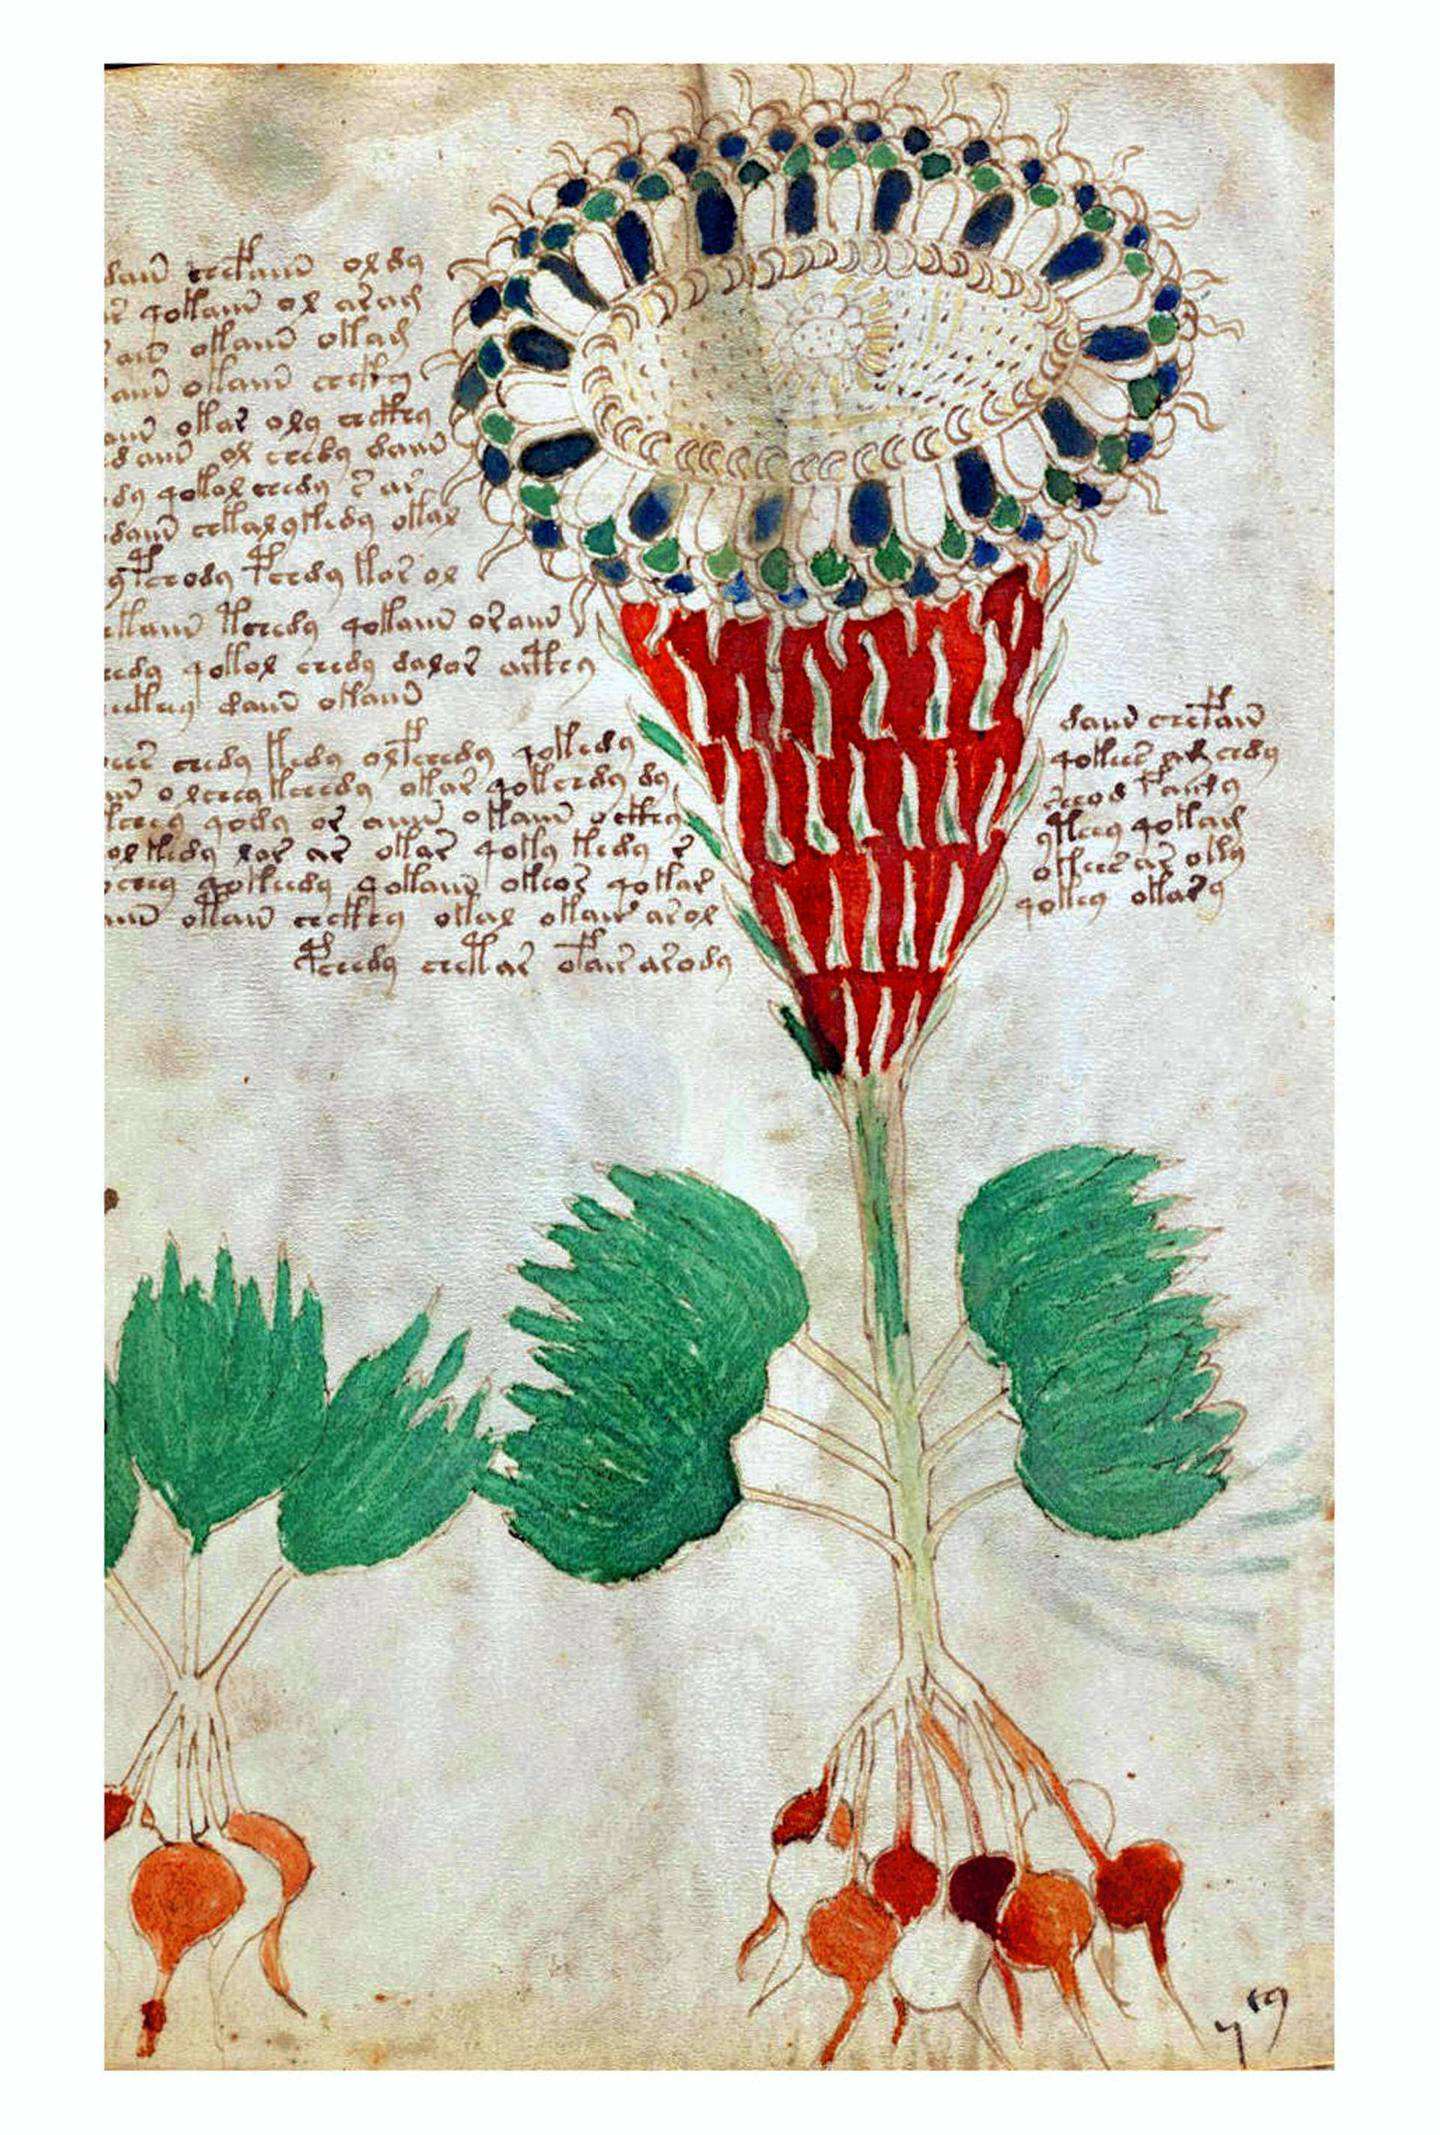 The Voynich Manuscript is considered by scholars to be most interesting and mysterious document ever found. Dated 16th century. (Photo by: Photo12/Universal Images Group via Getty Images)